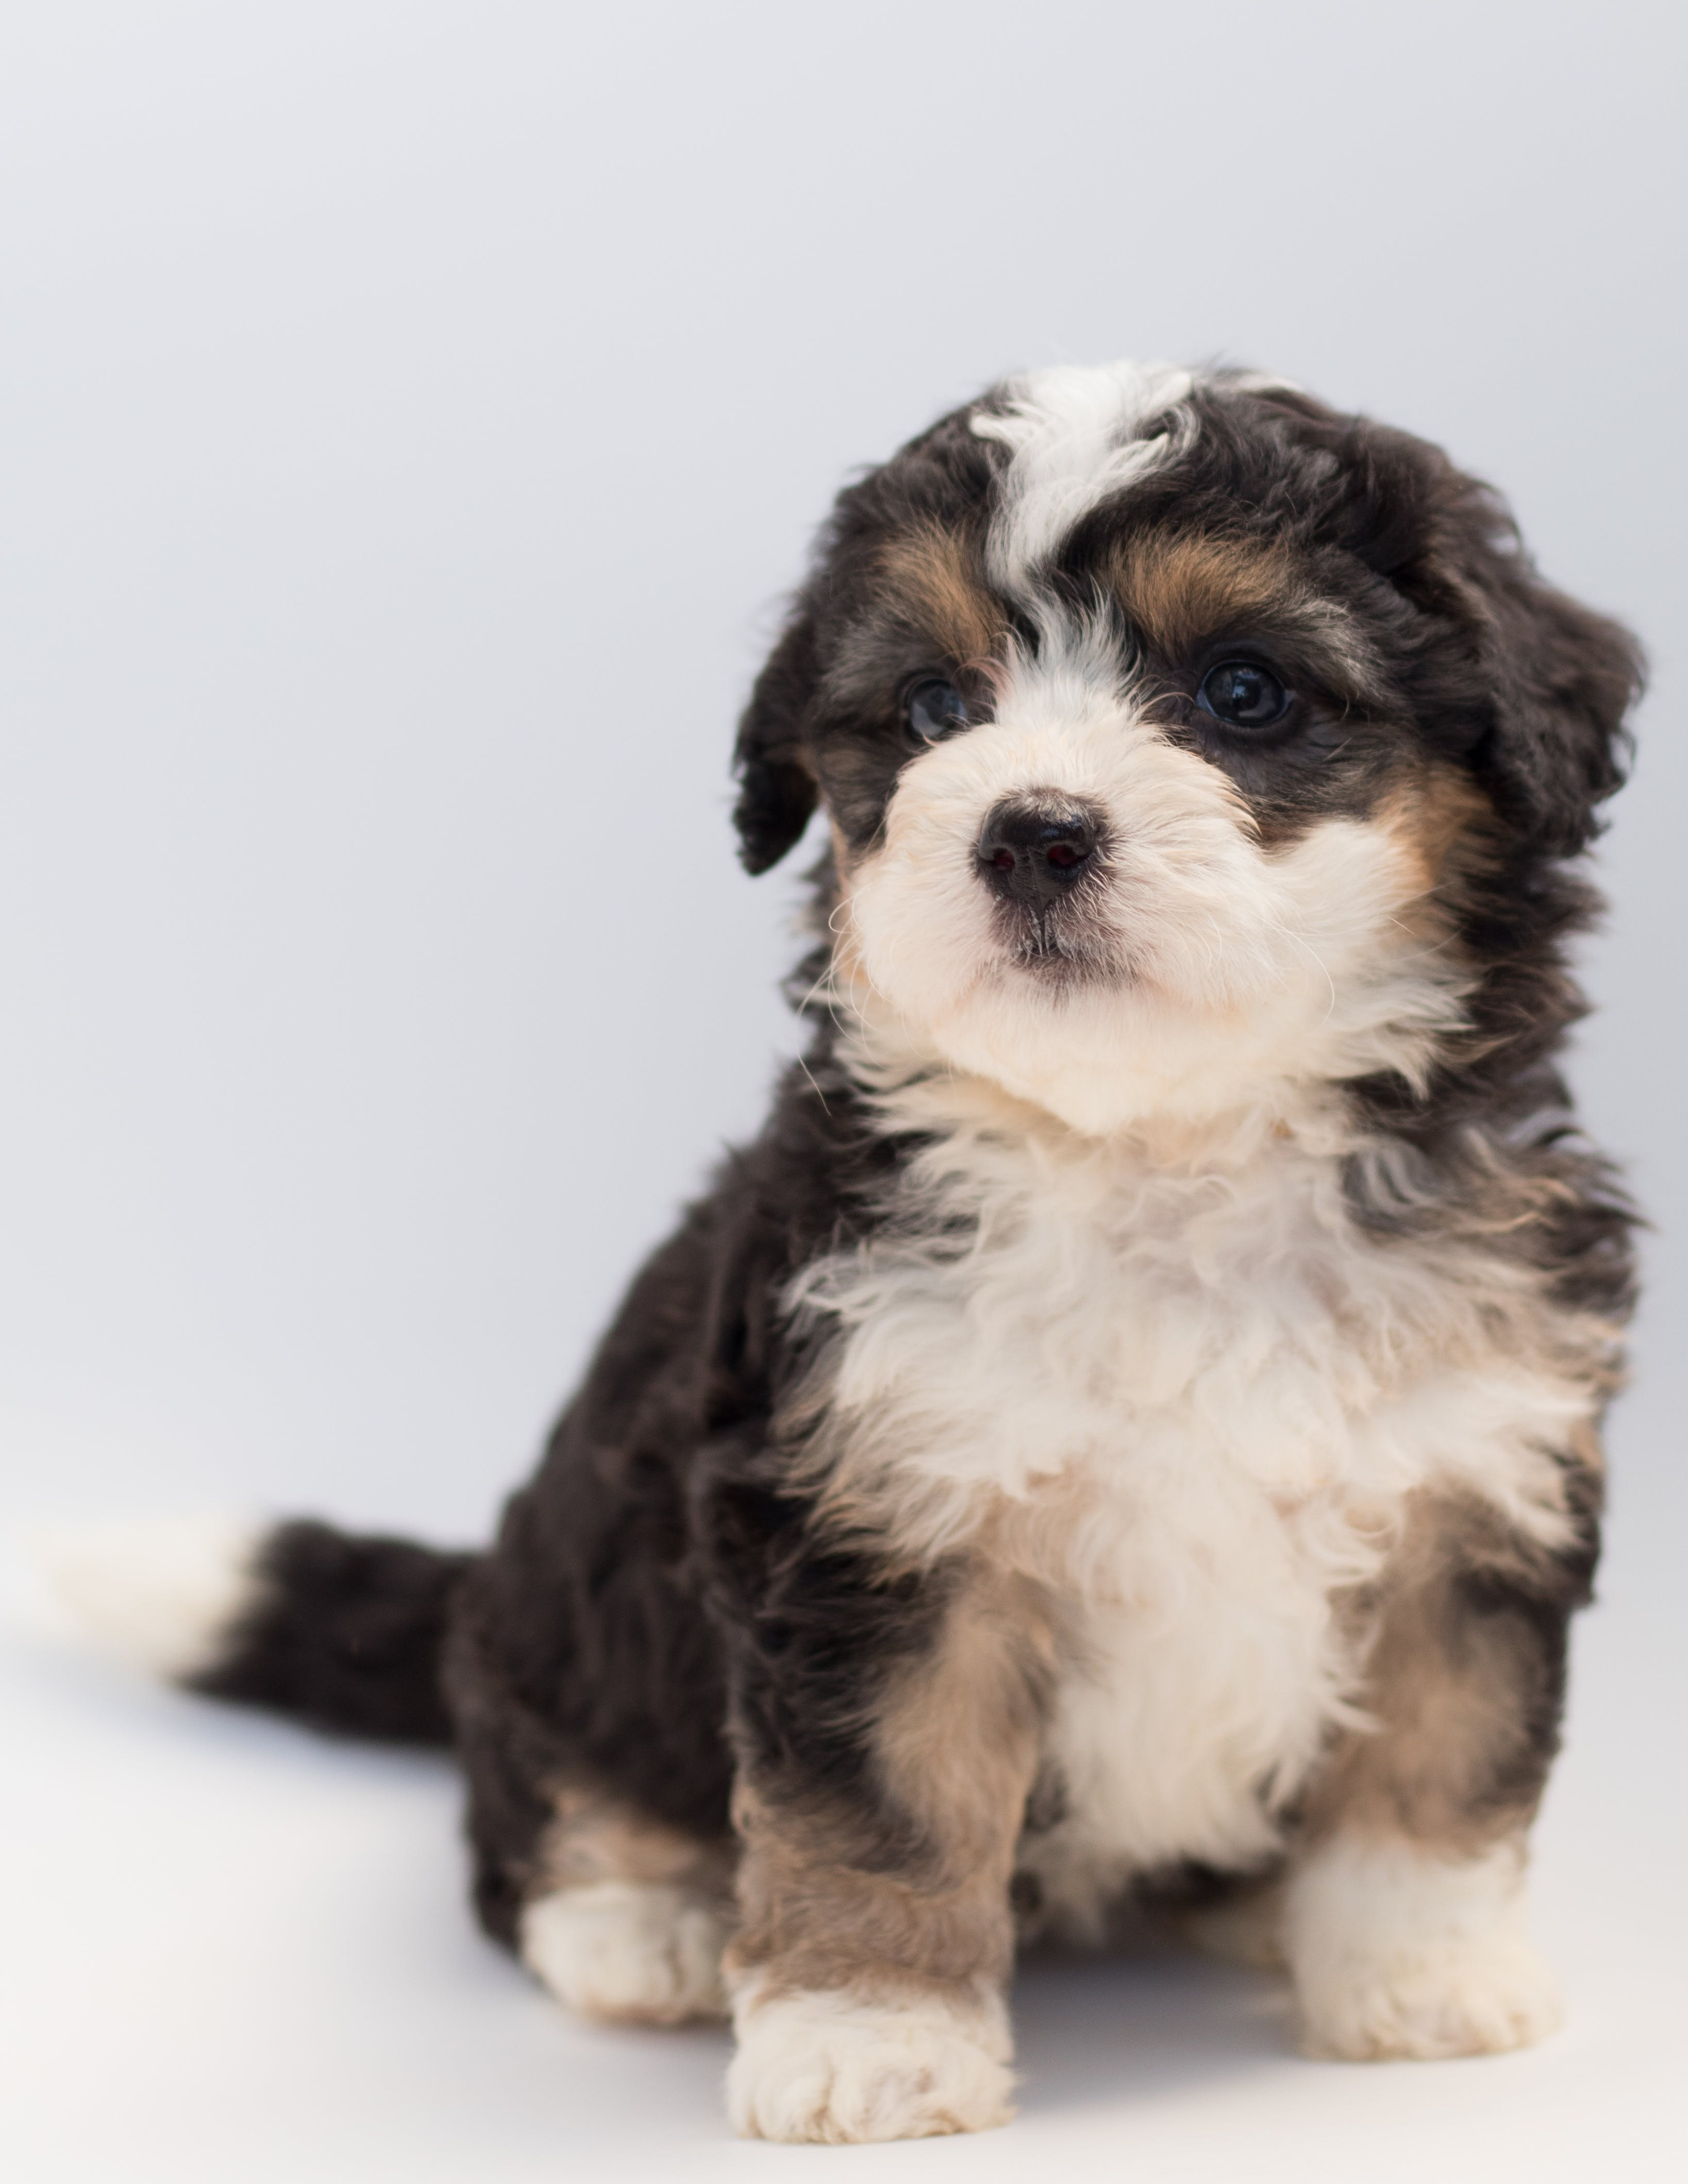 Close-Up Photo of Sitting Puppy